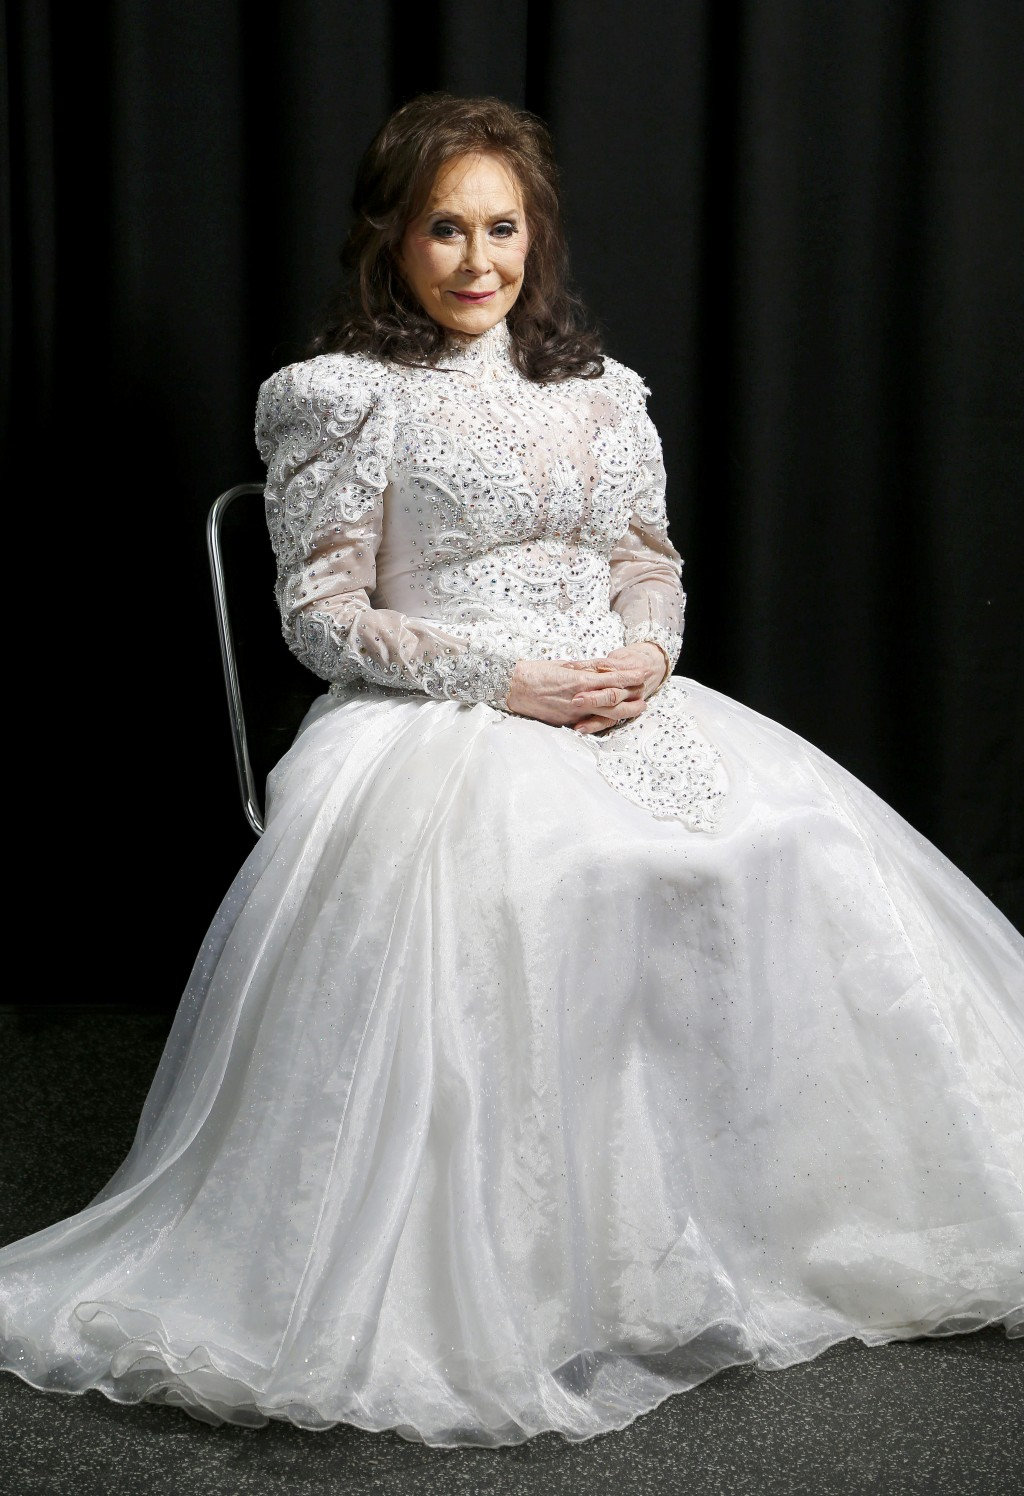 In this Feb. 10, 2016 file photo, Loretta Lynn poses for a photo at the Municipal Auditorium in Nashville, Tenn. Lynn will be recognized as an artist